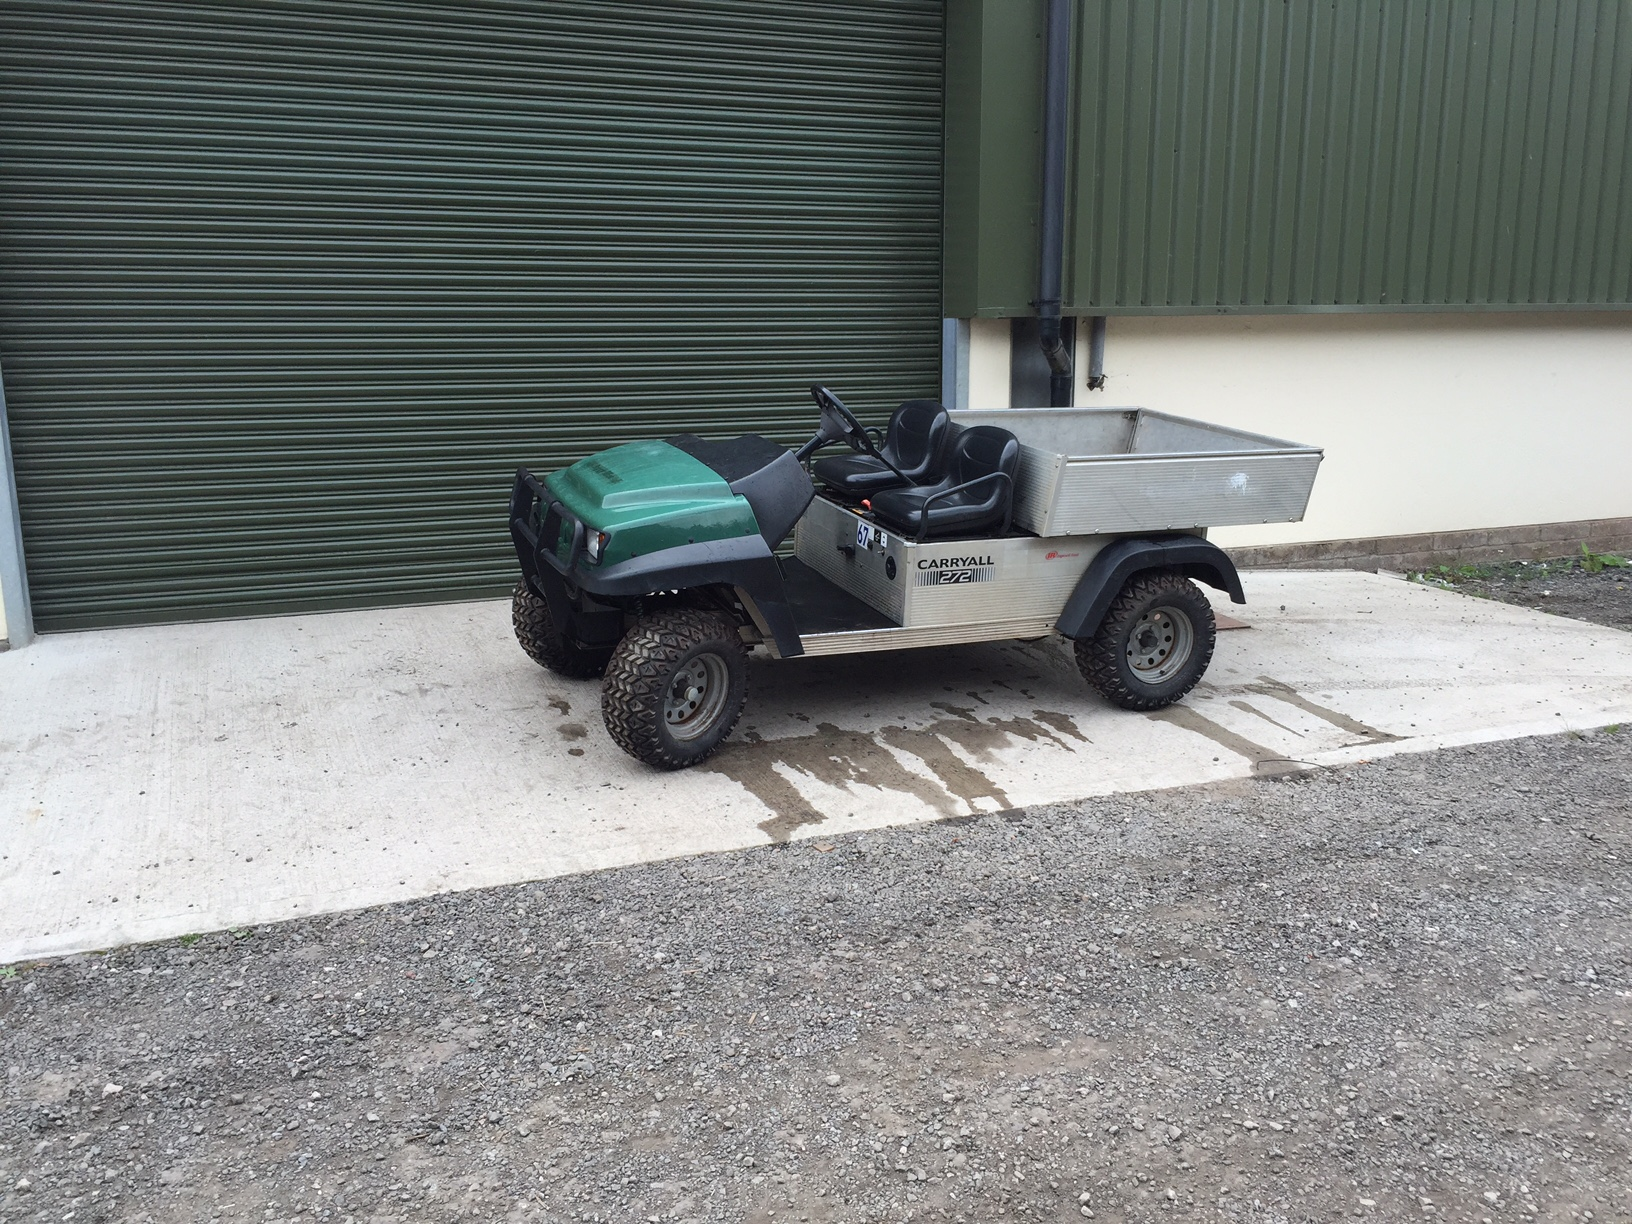 Club Car carryall 272 manual